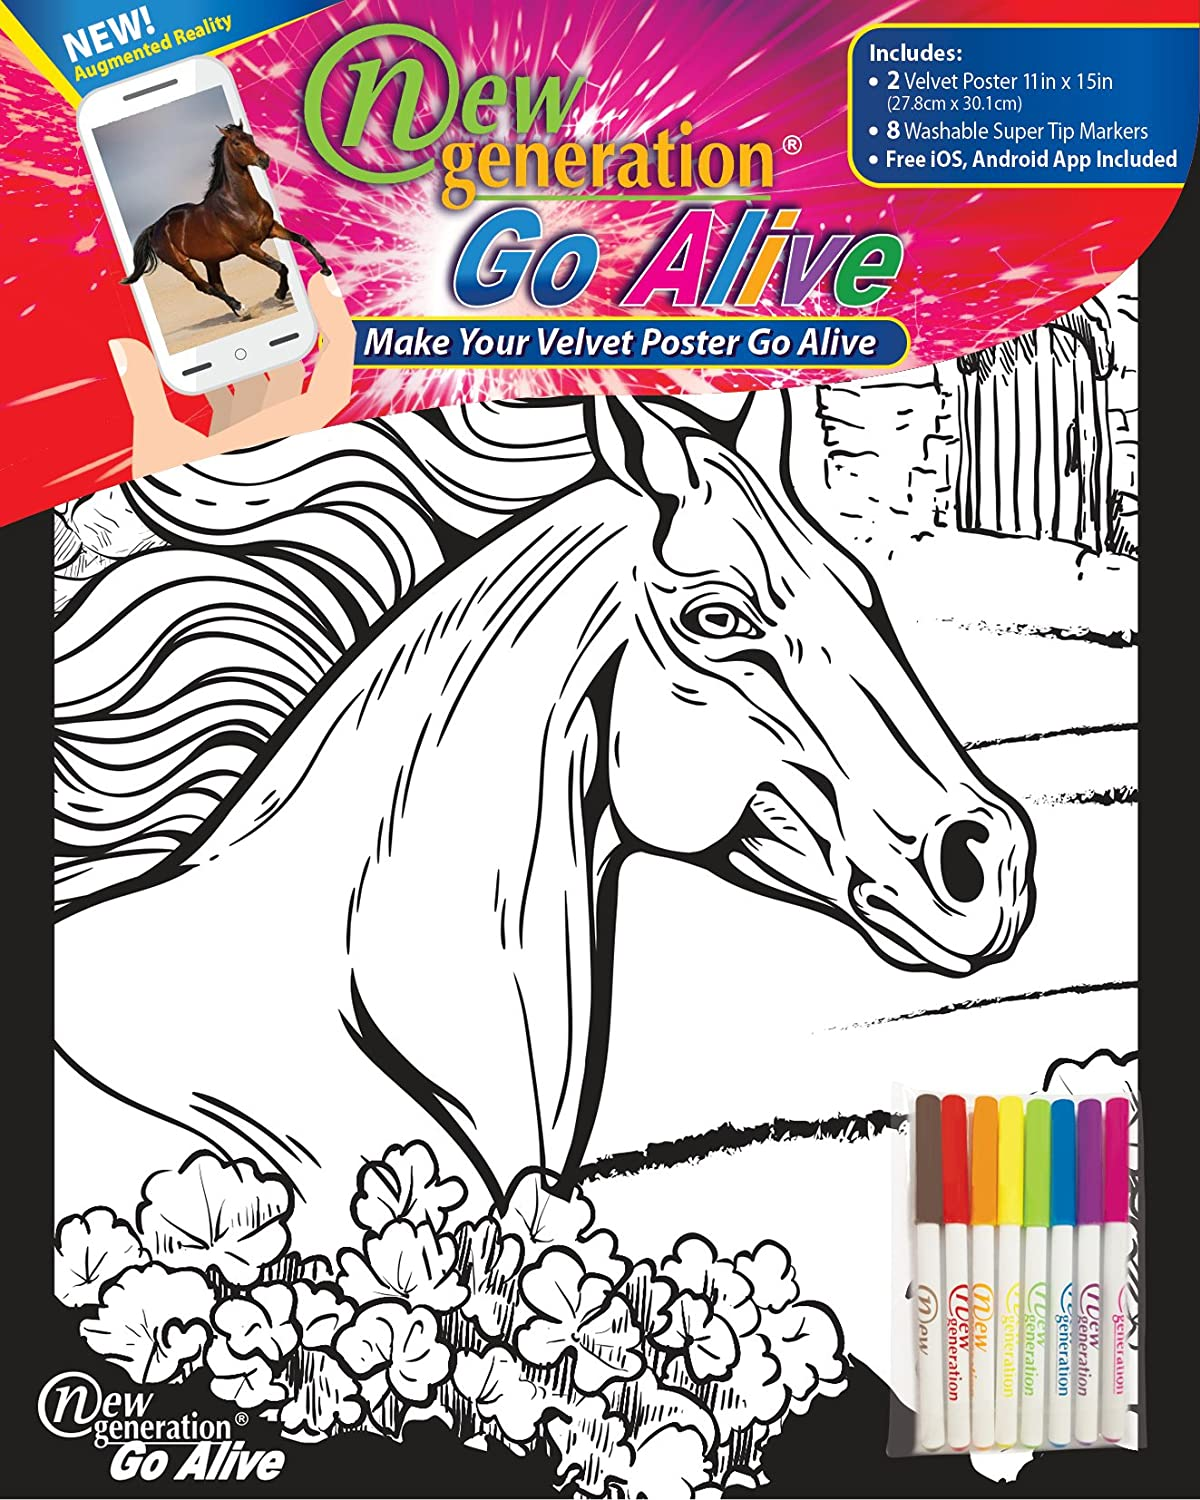 New Generation Go Alive - Horse Coloring Velvet Art Posters 2-Pack Set of 11x15 Inch Color in Posters | 8 Super Tip Washable Markers Included| Horses Value Pack Fuzzy Posters Great Gifting idea